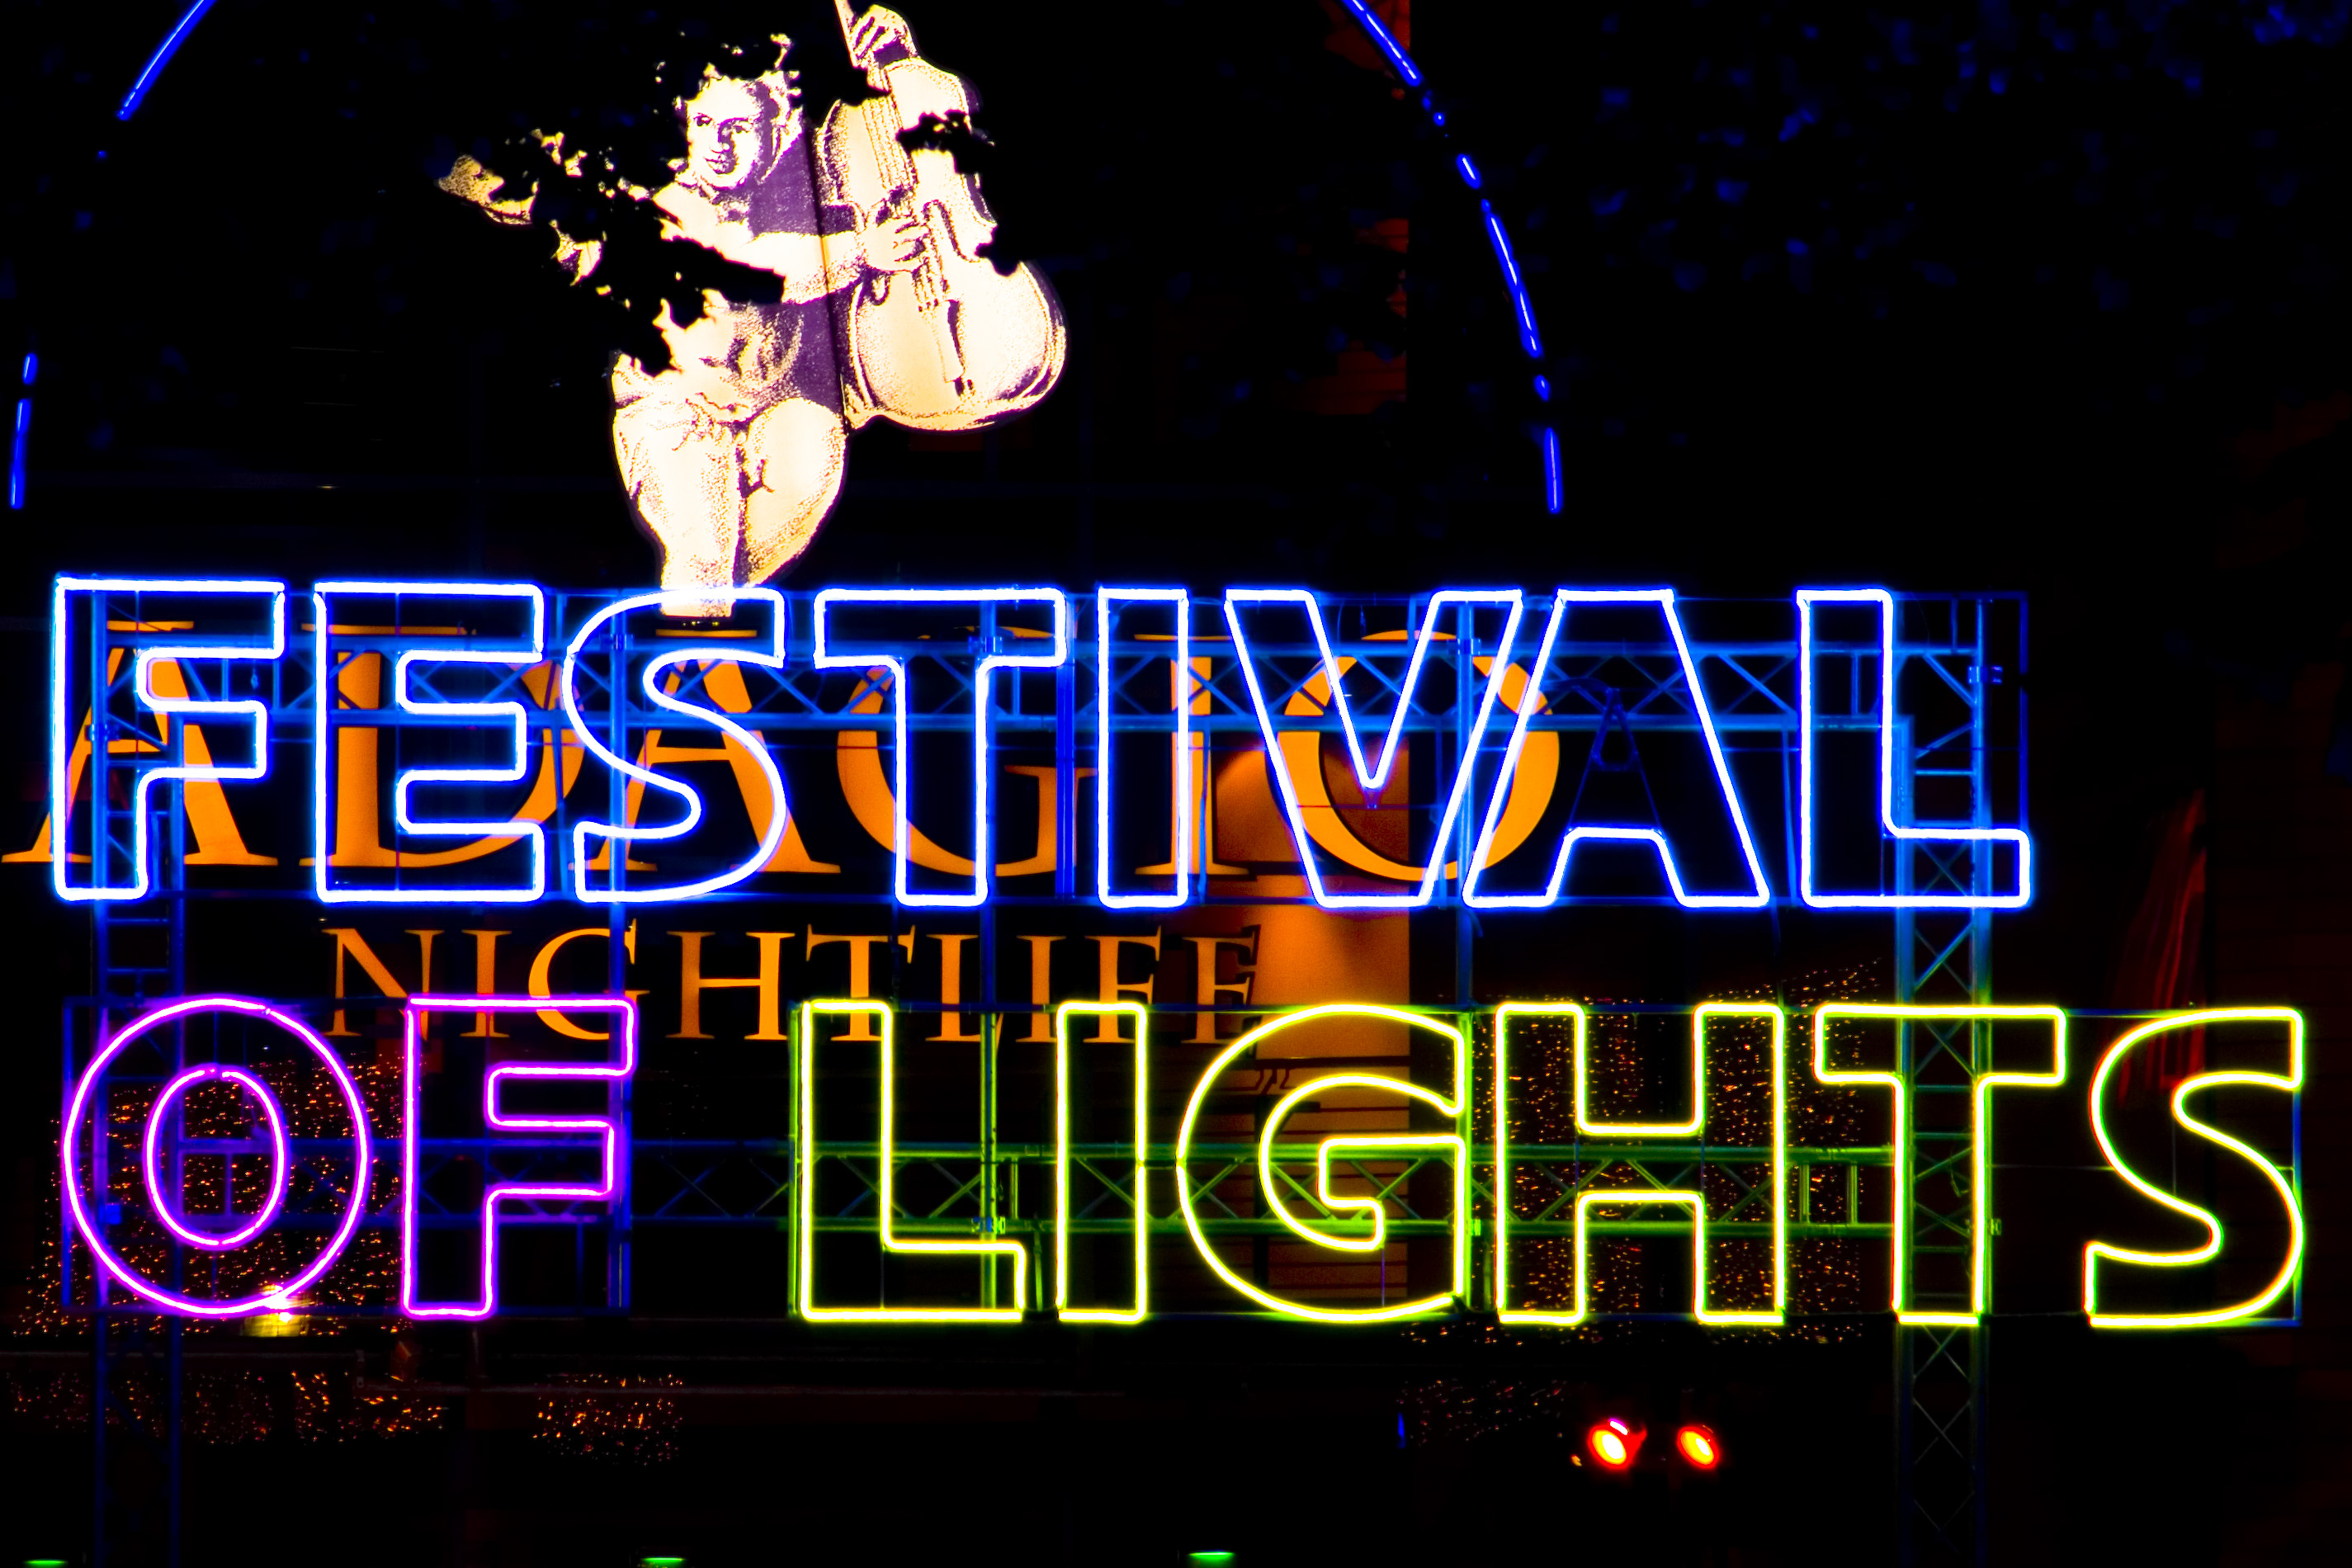 Amazing Festival Of Lights - Berlin Pictures & Backgrounds